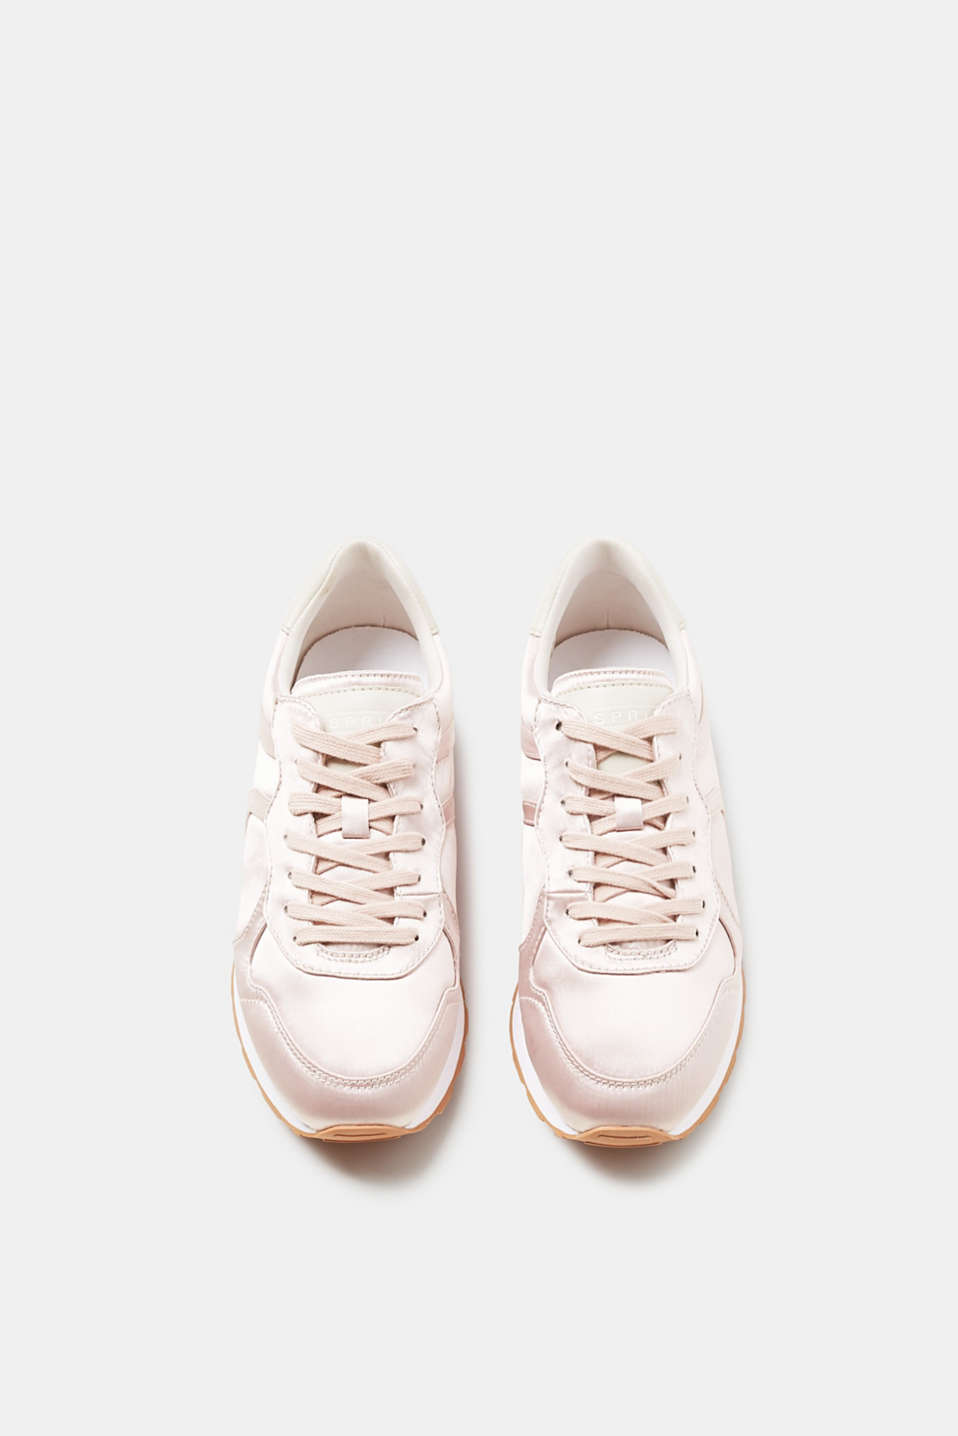 Lace-up trainers with a fine shimmer